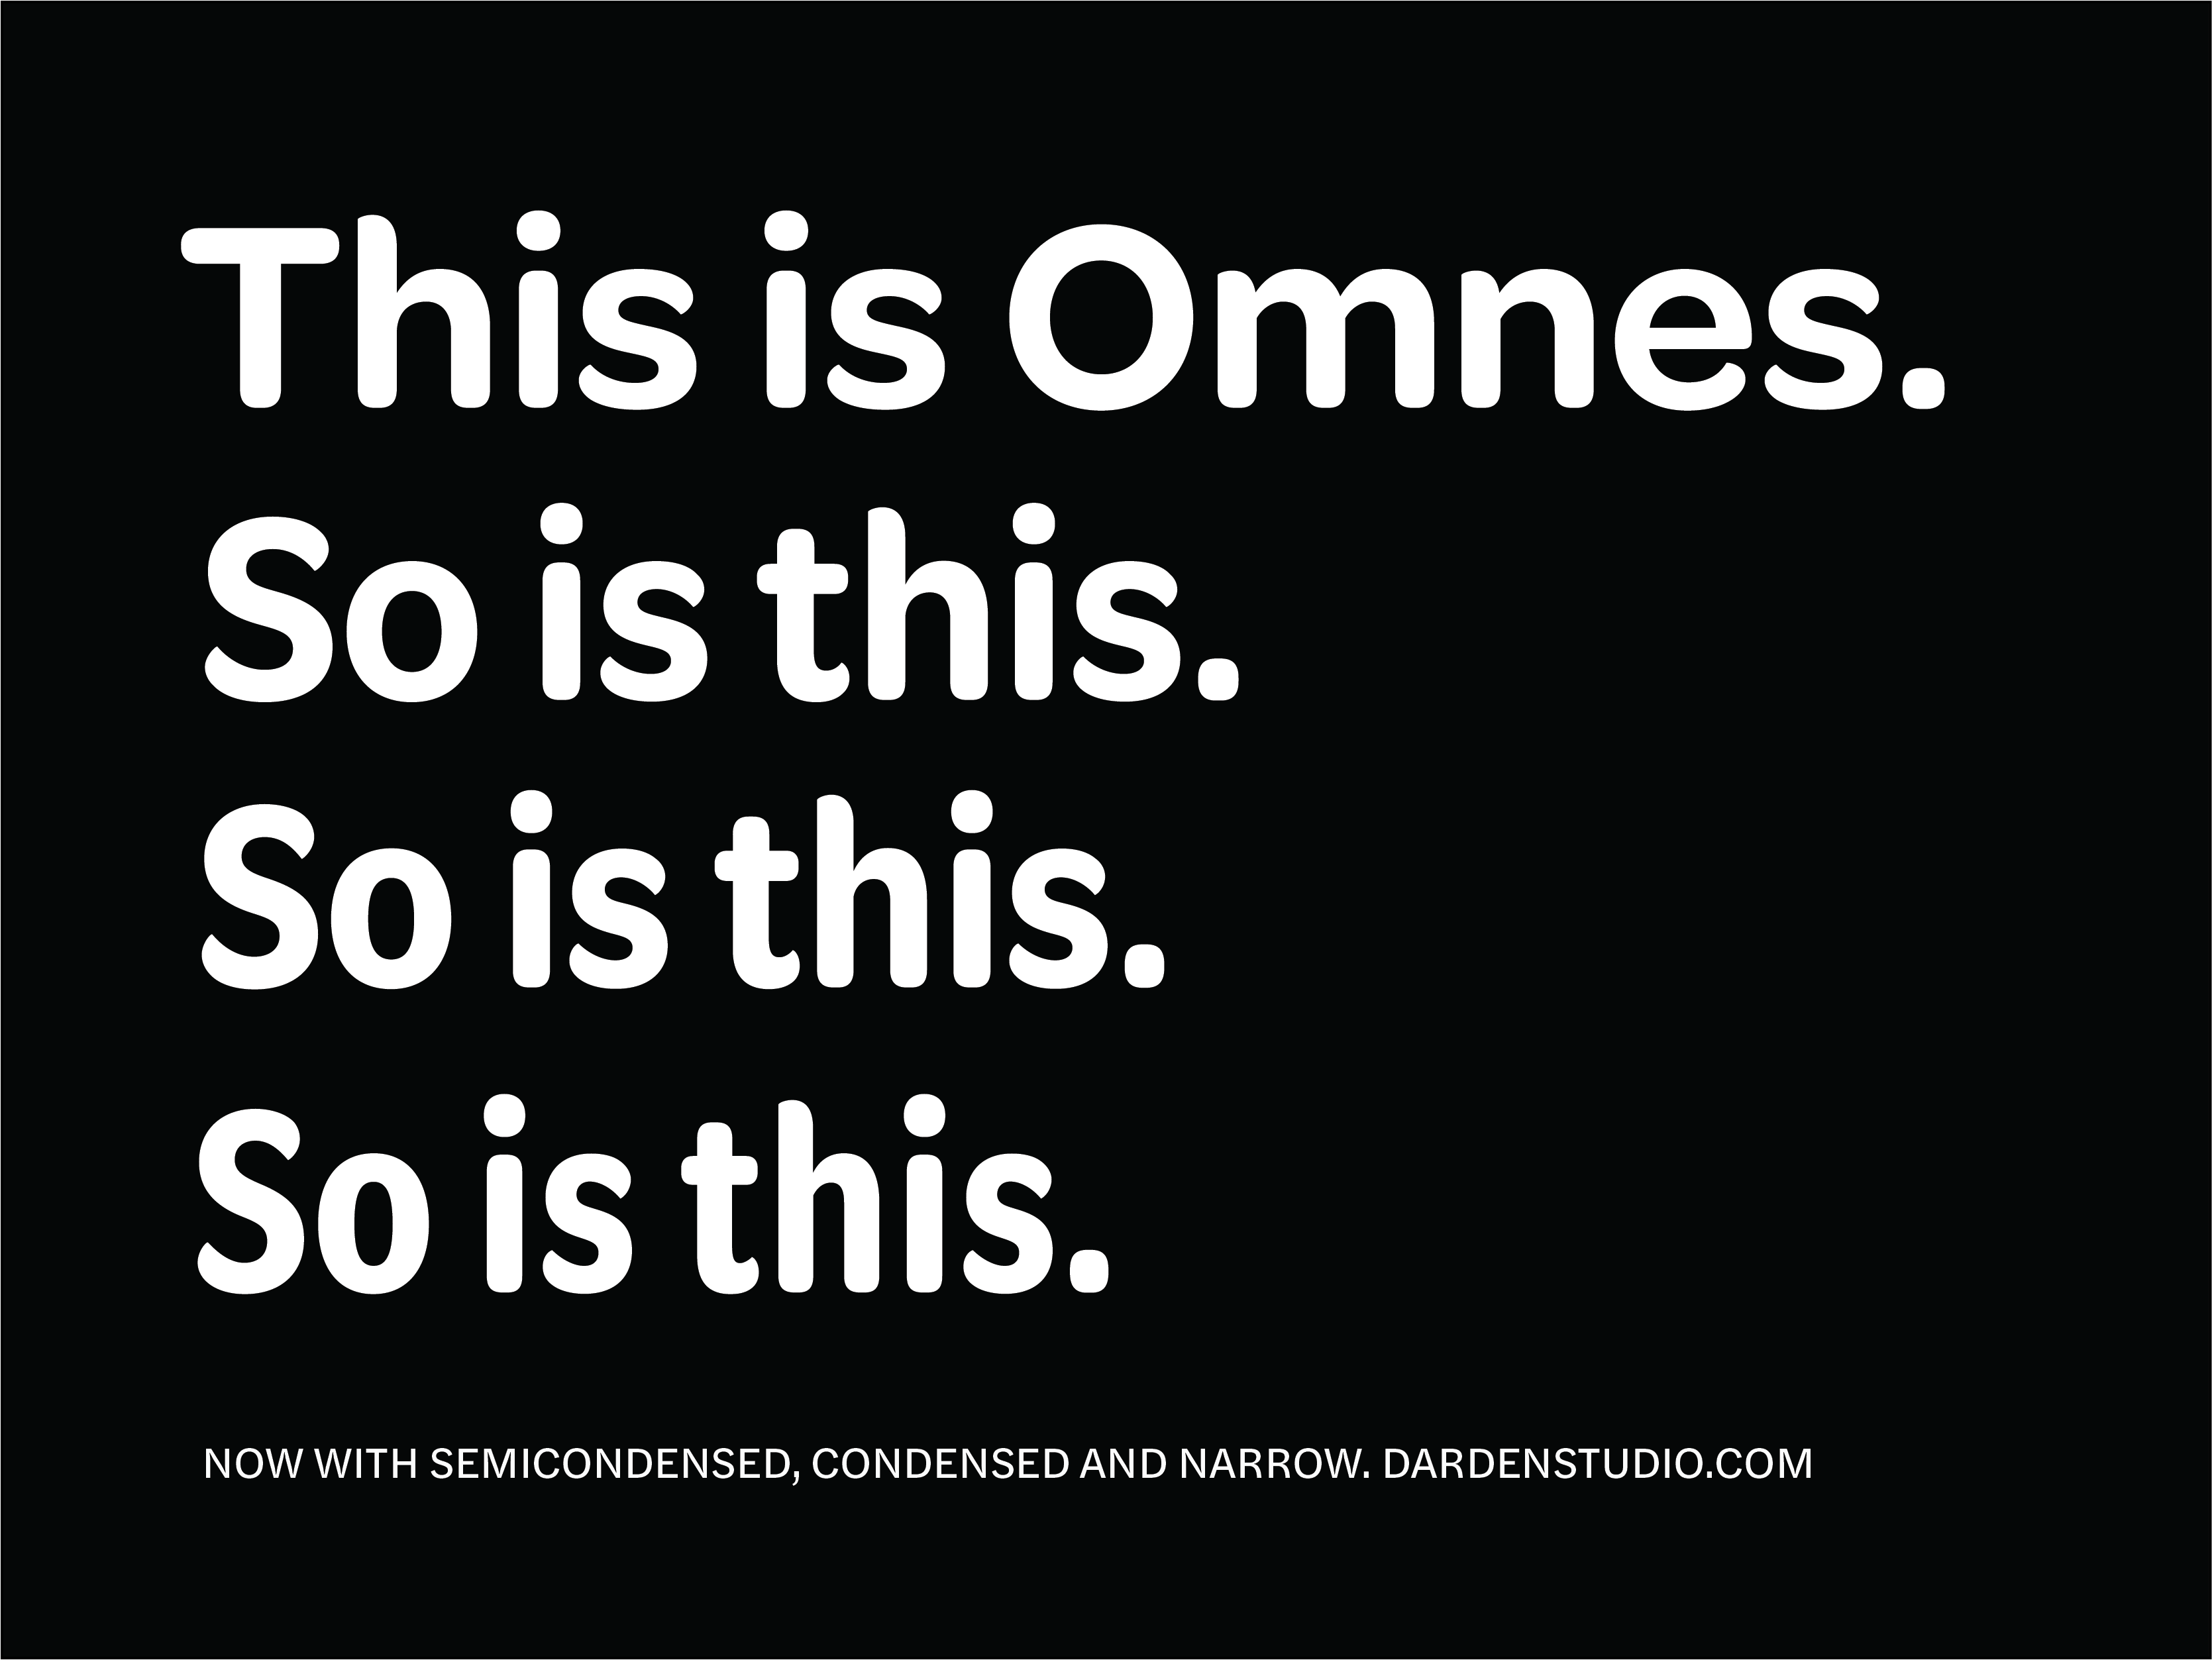 Omnes in four widths